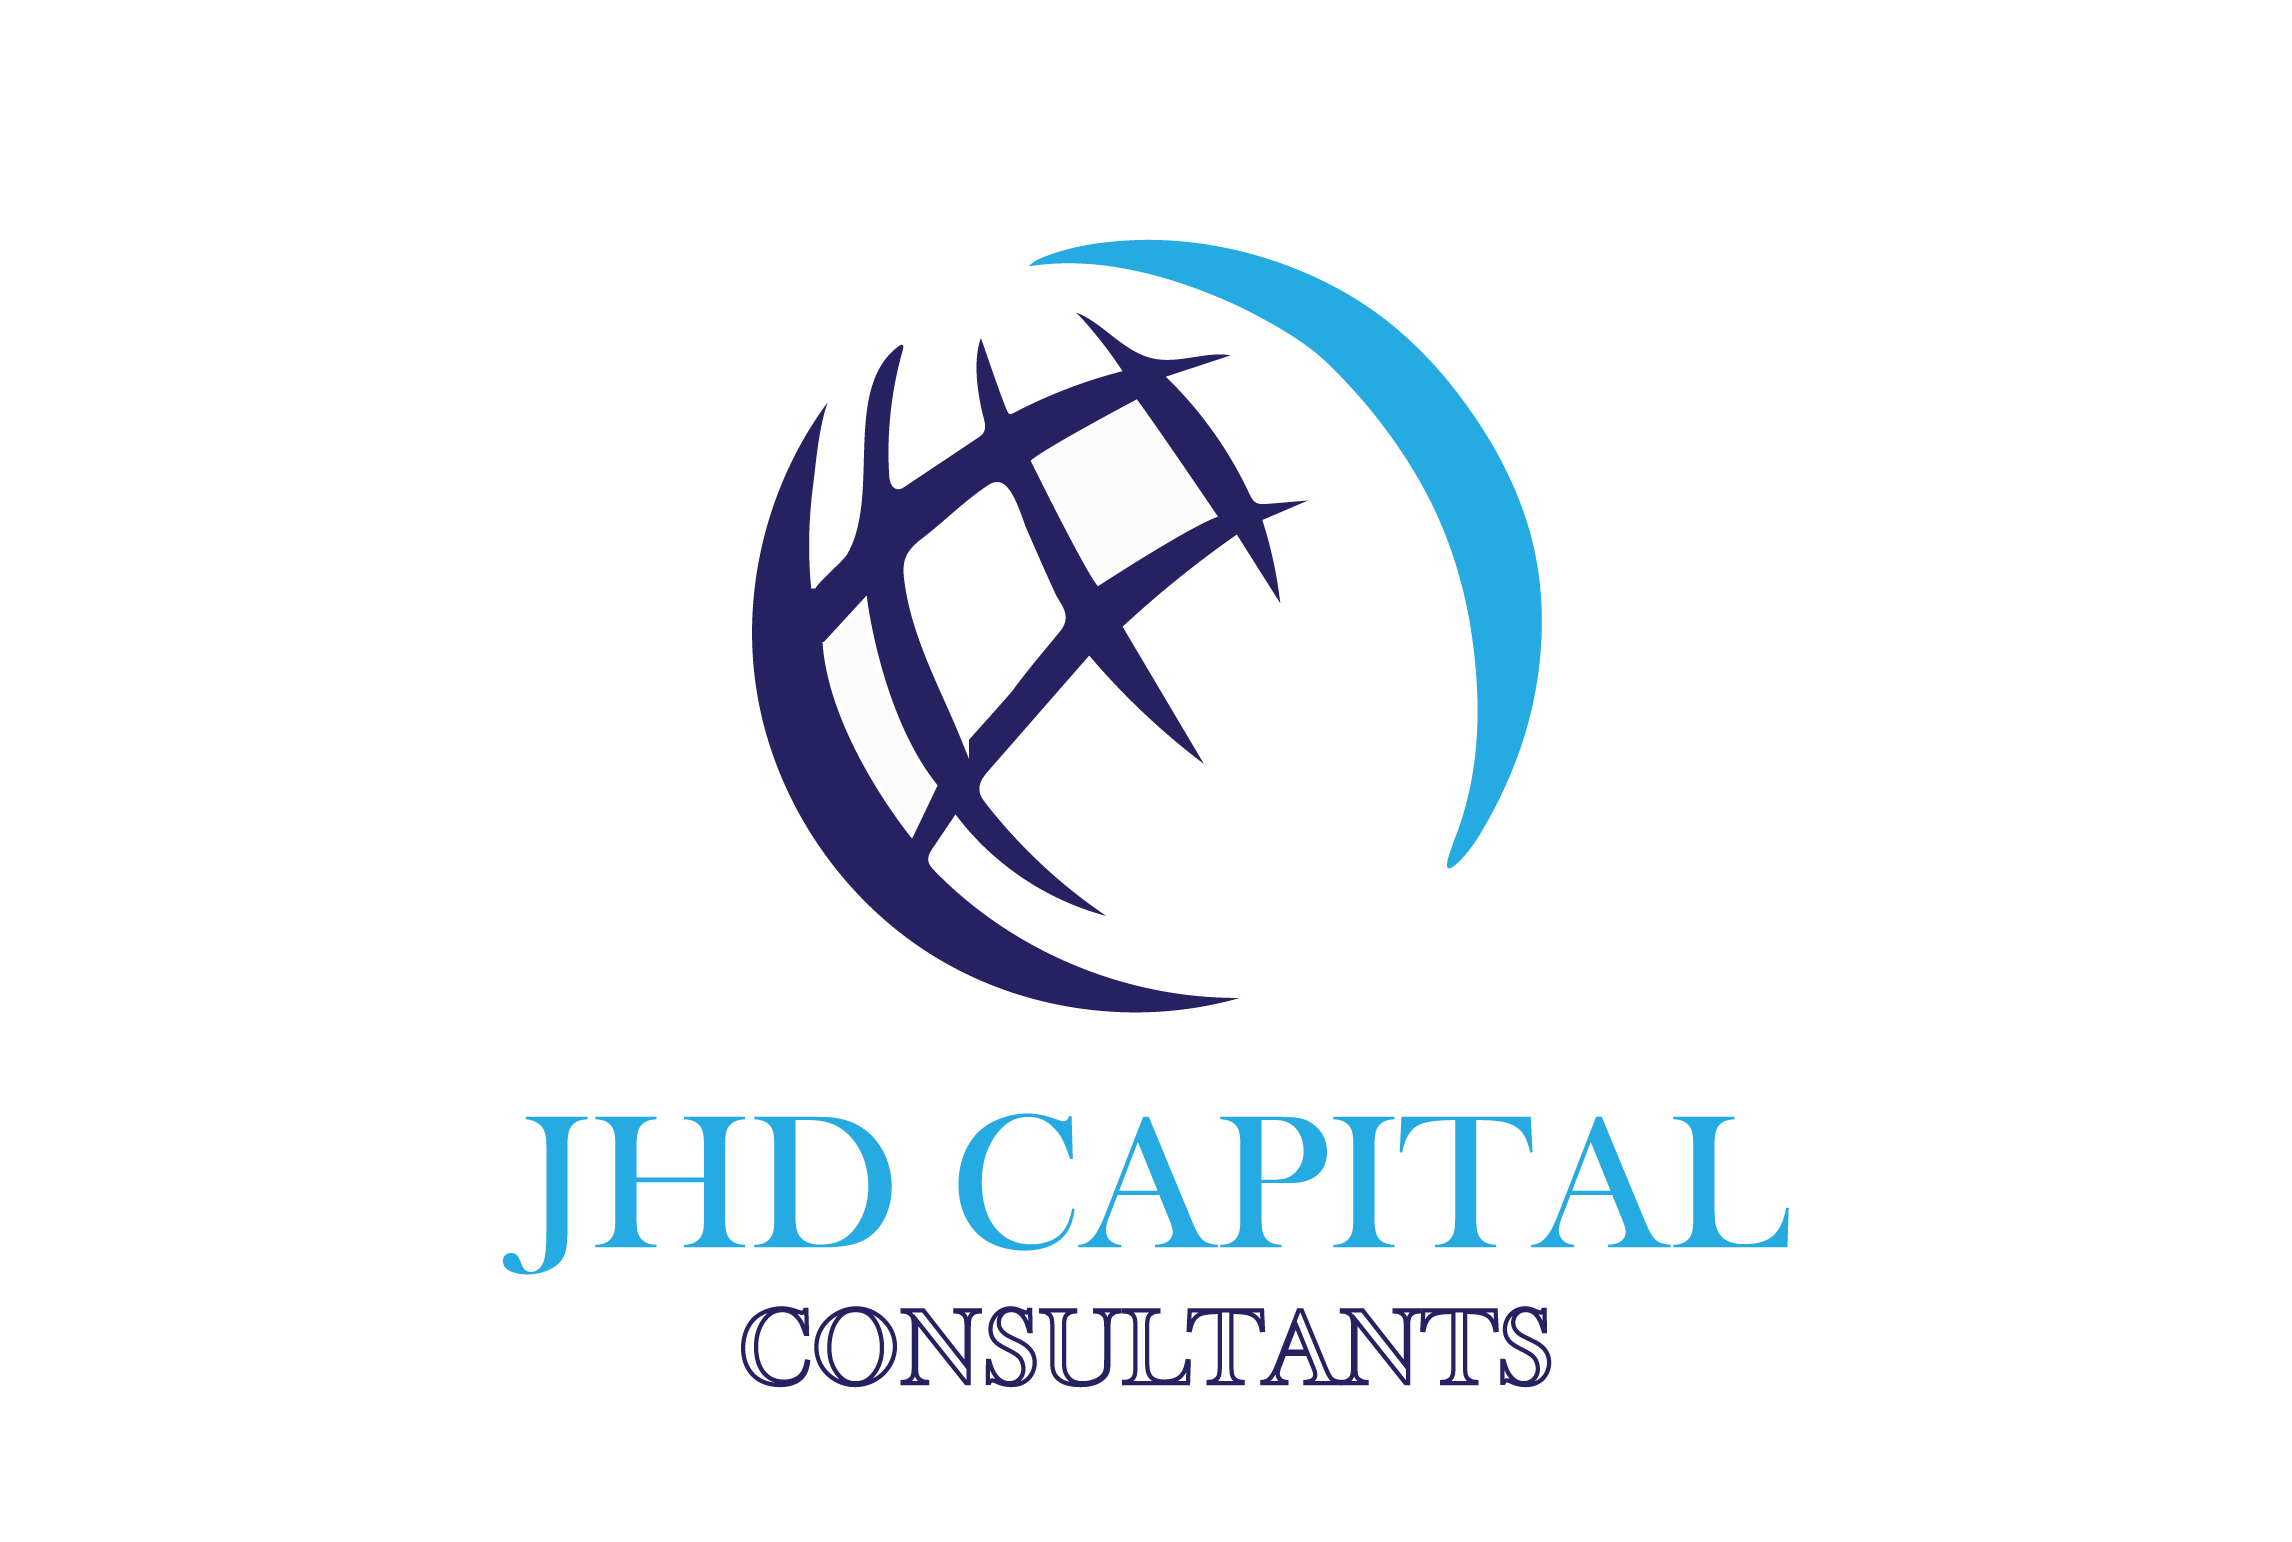 JHD Capital Consultants - Call 215.274.0088